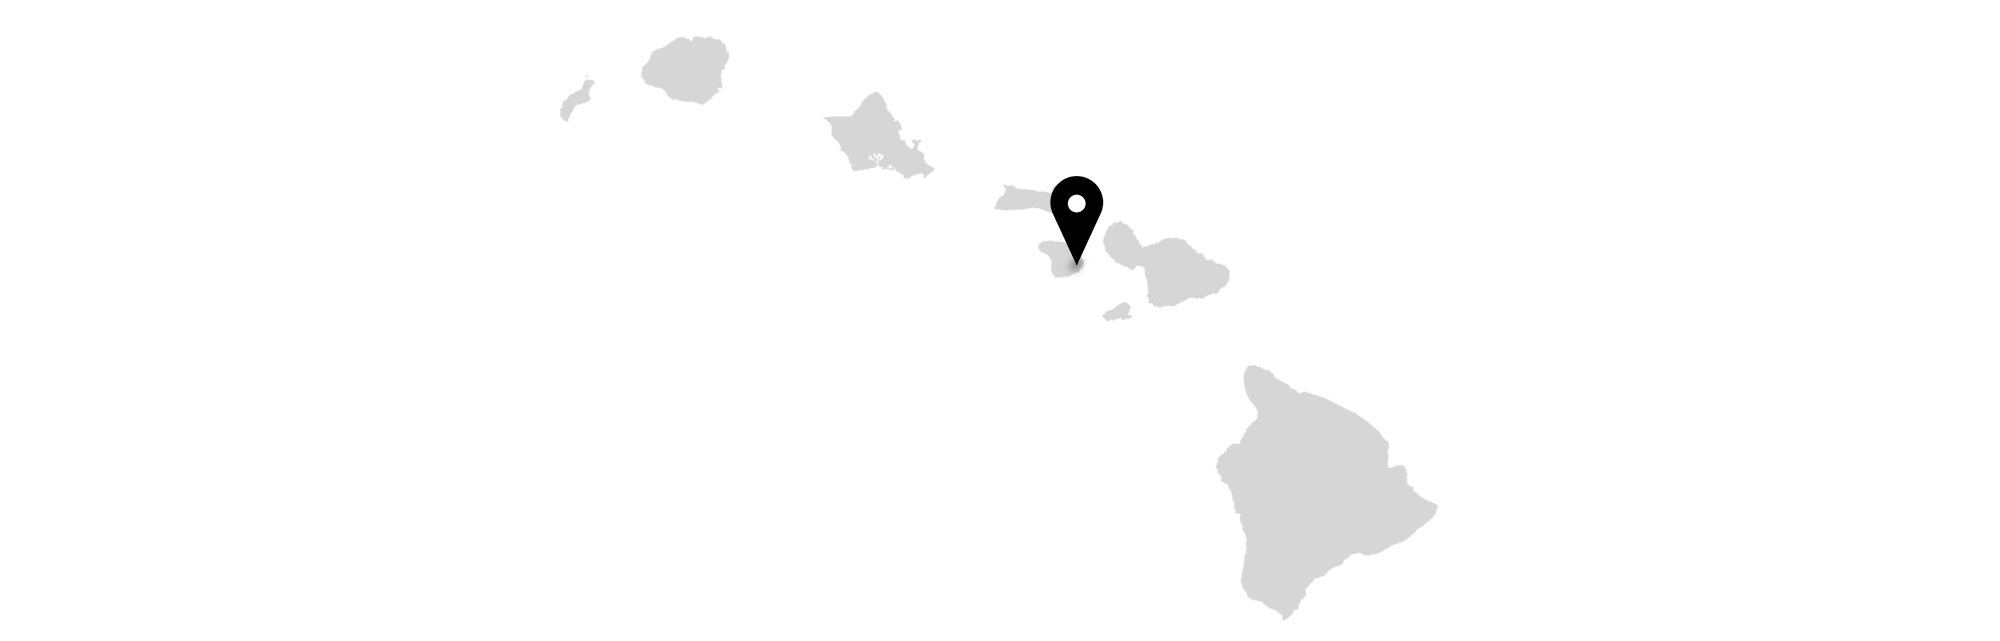 Lanai on Hawaii map